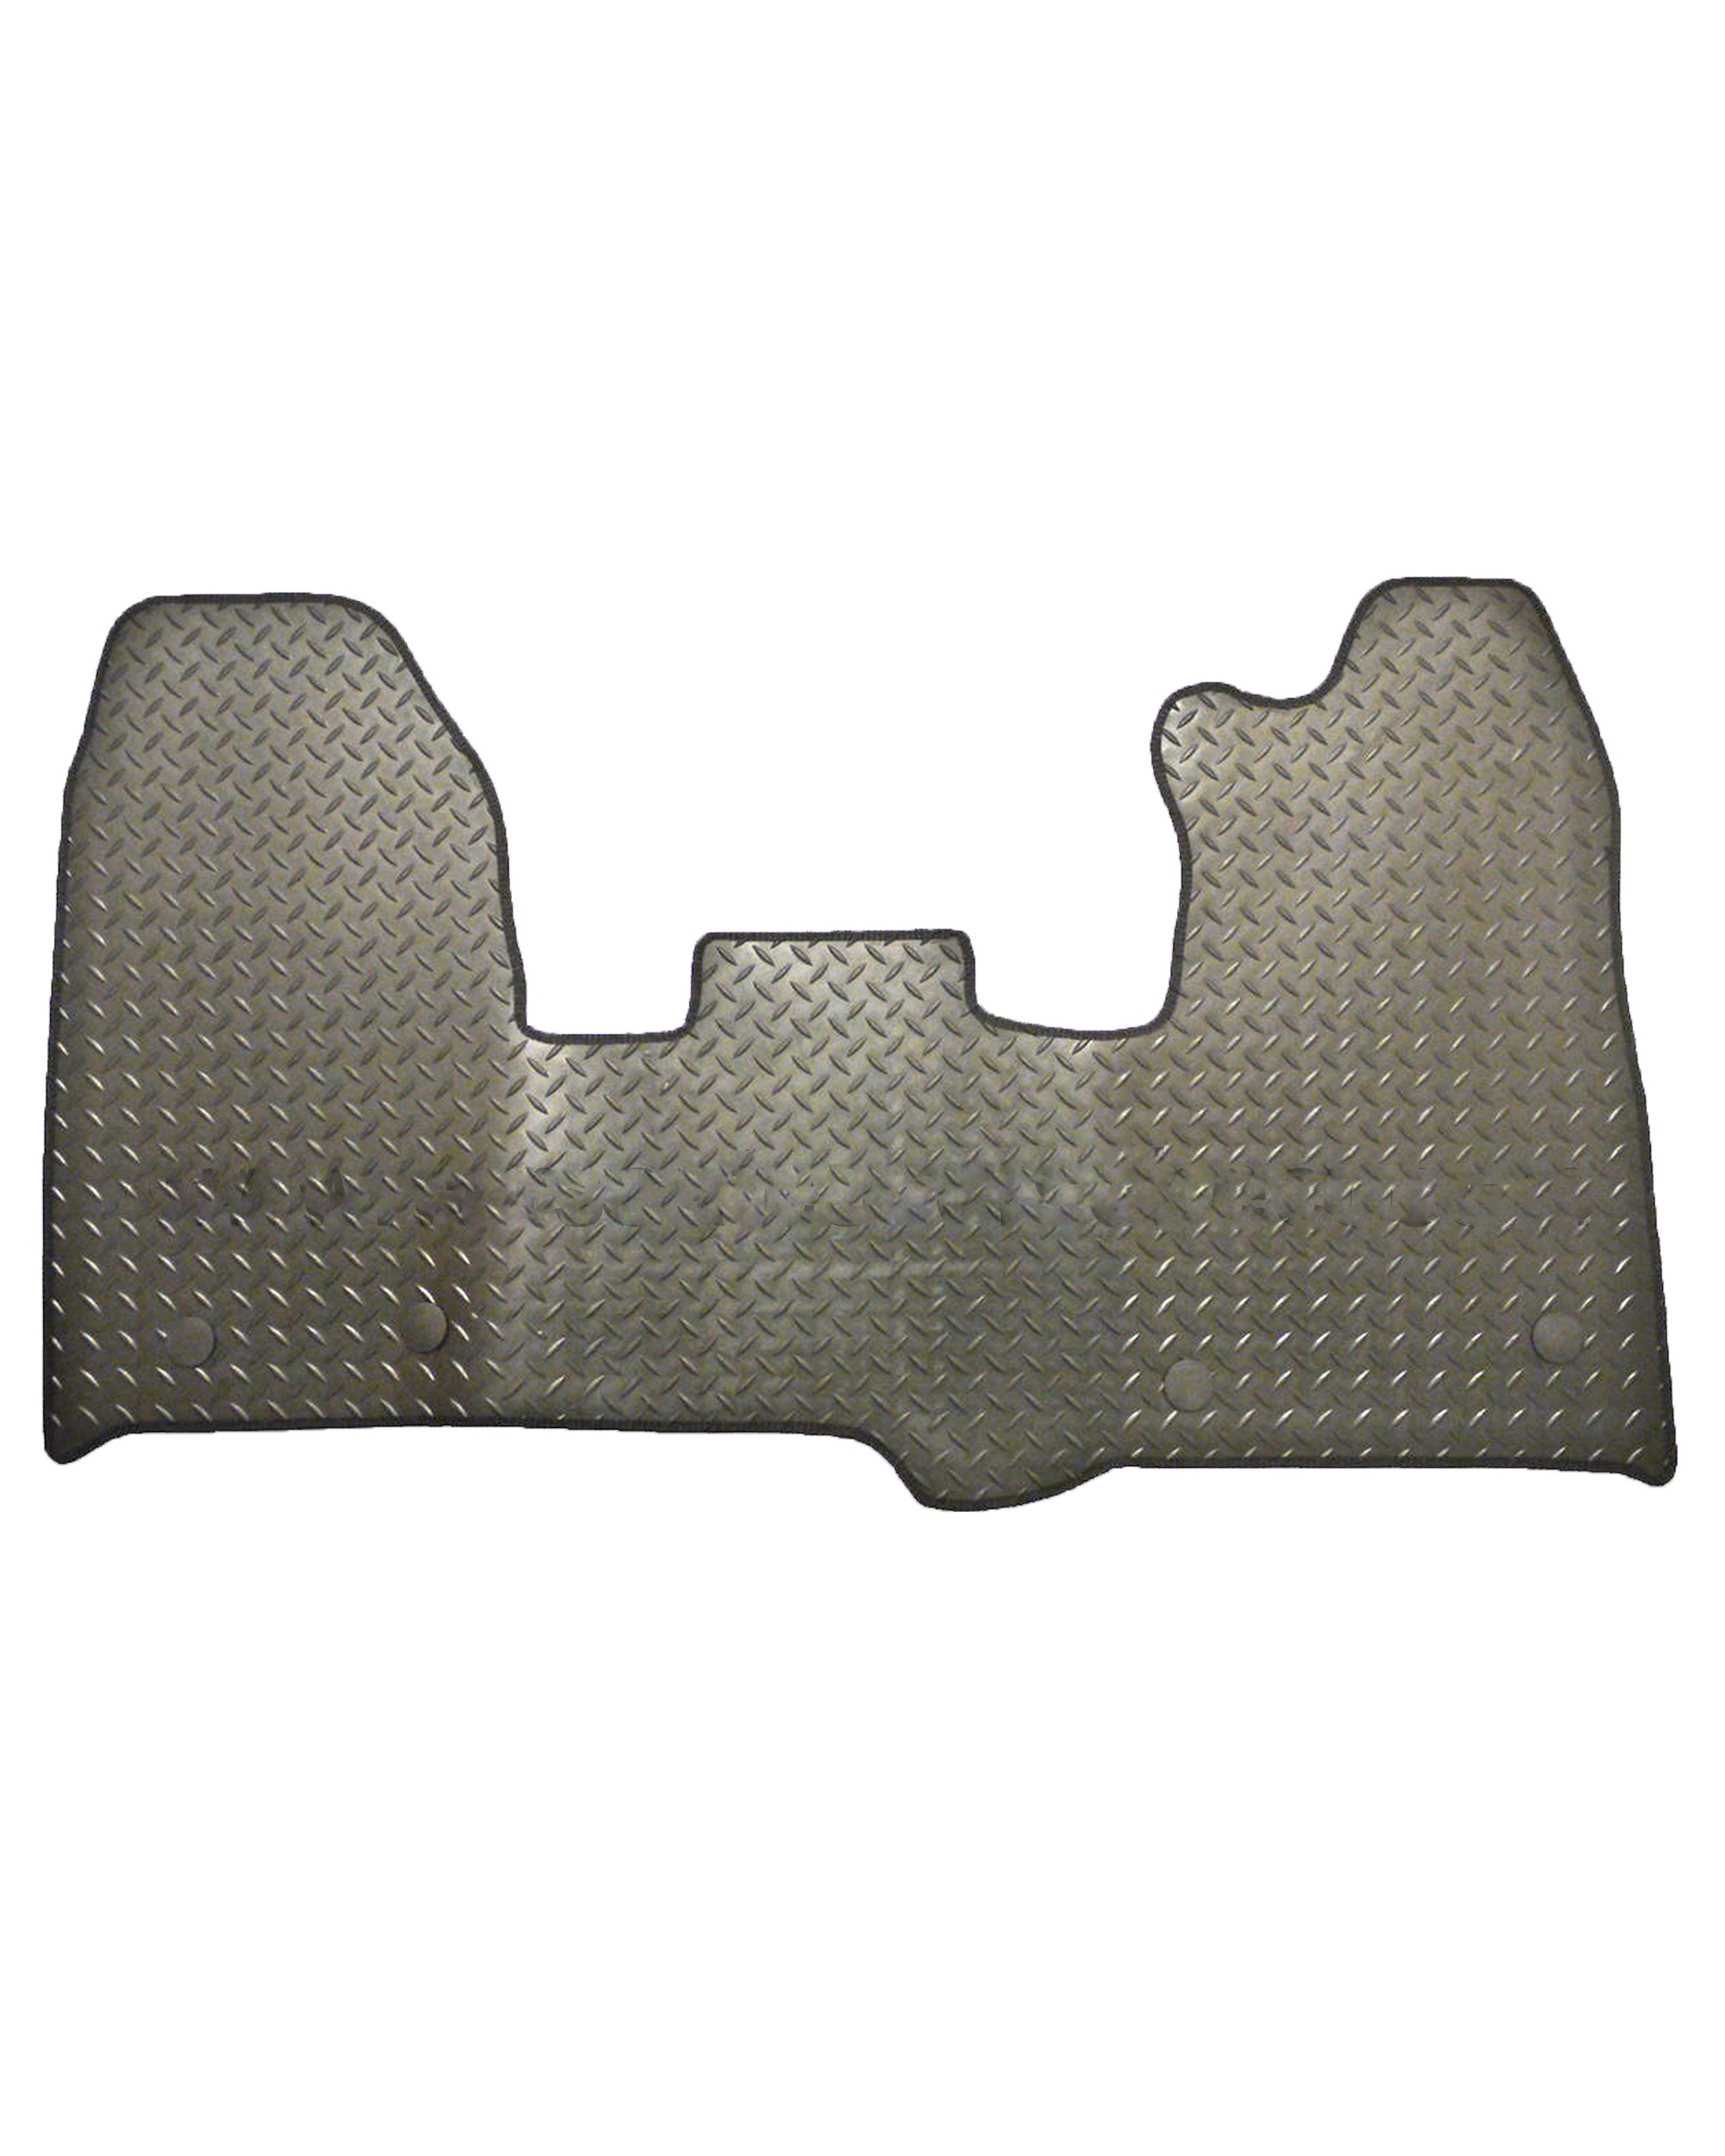 Ford Transit MK Heavy Duty Rubber Floor Mat